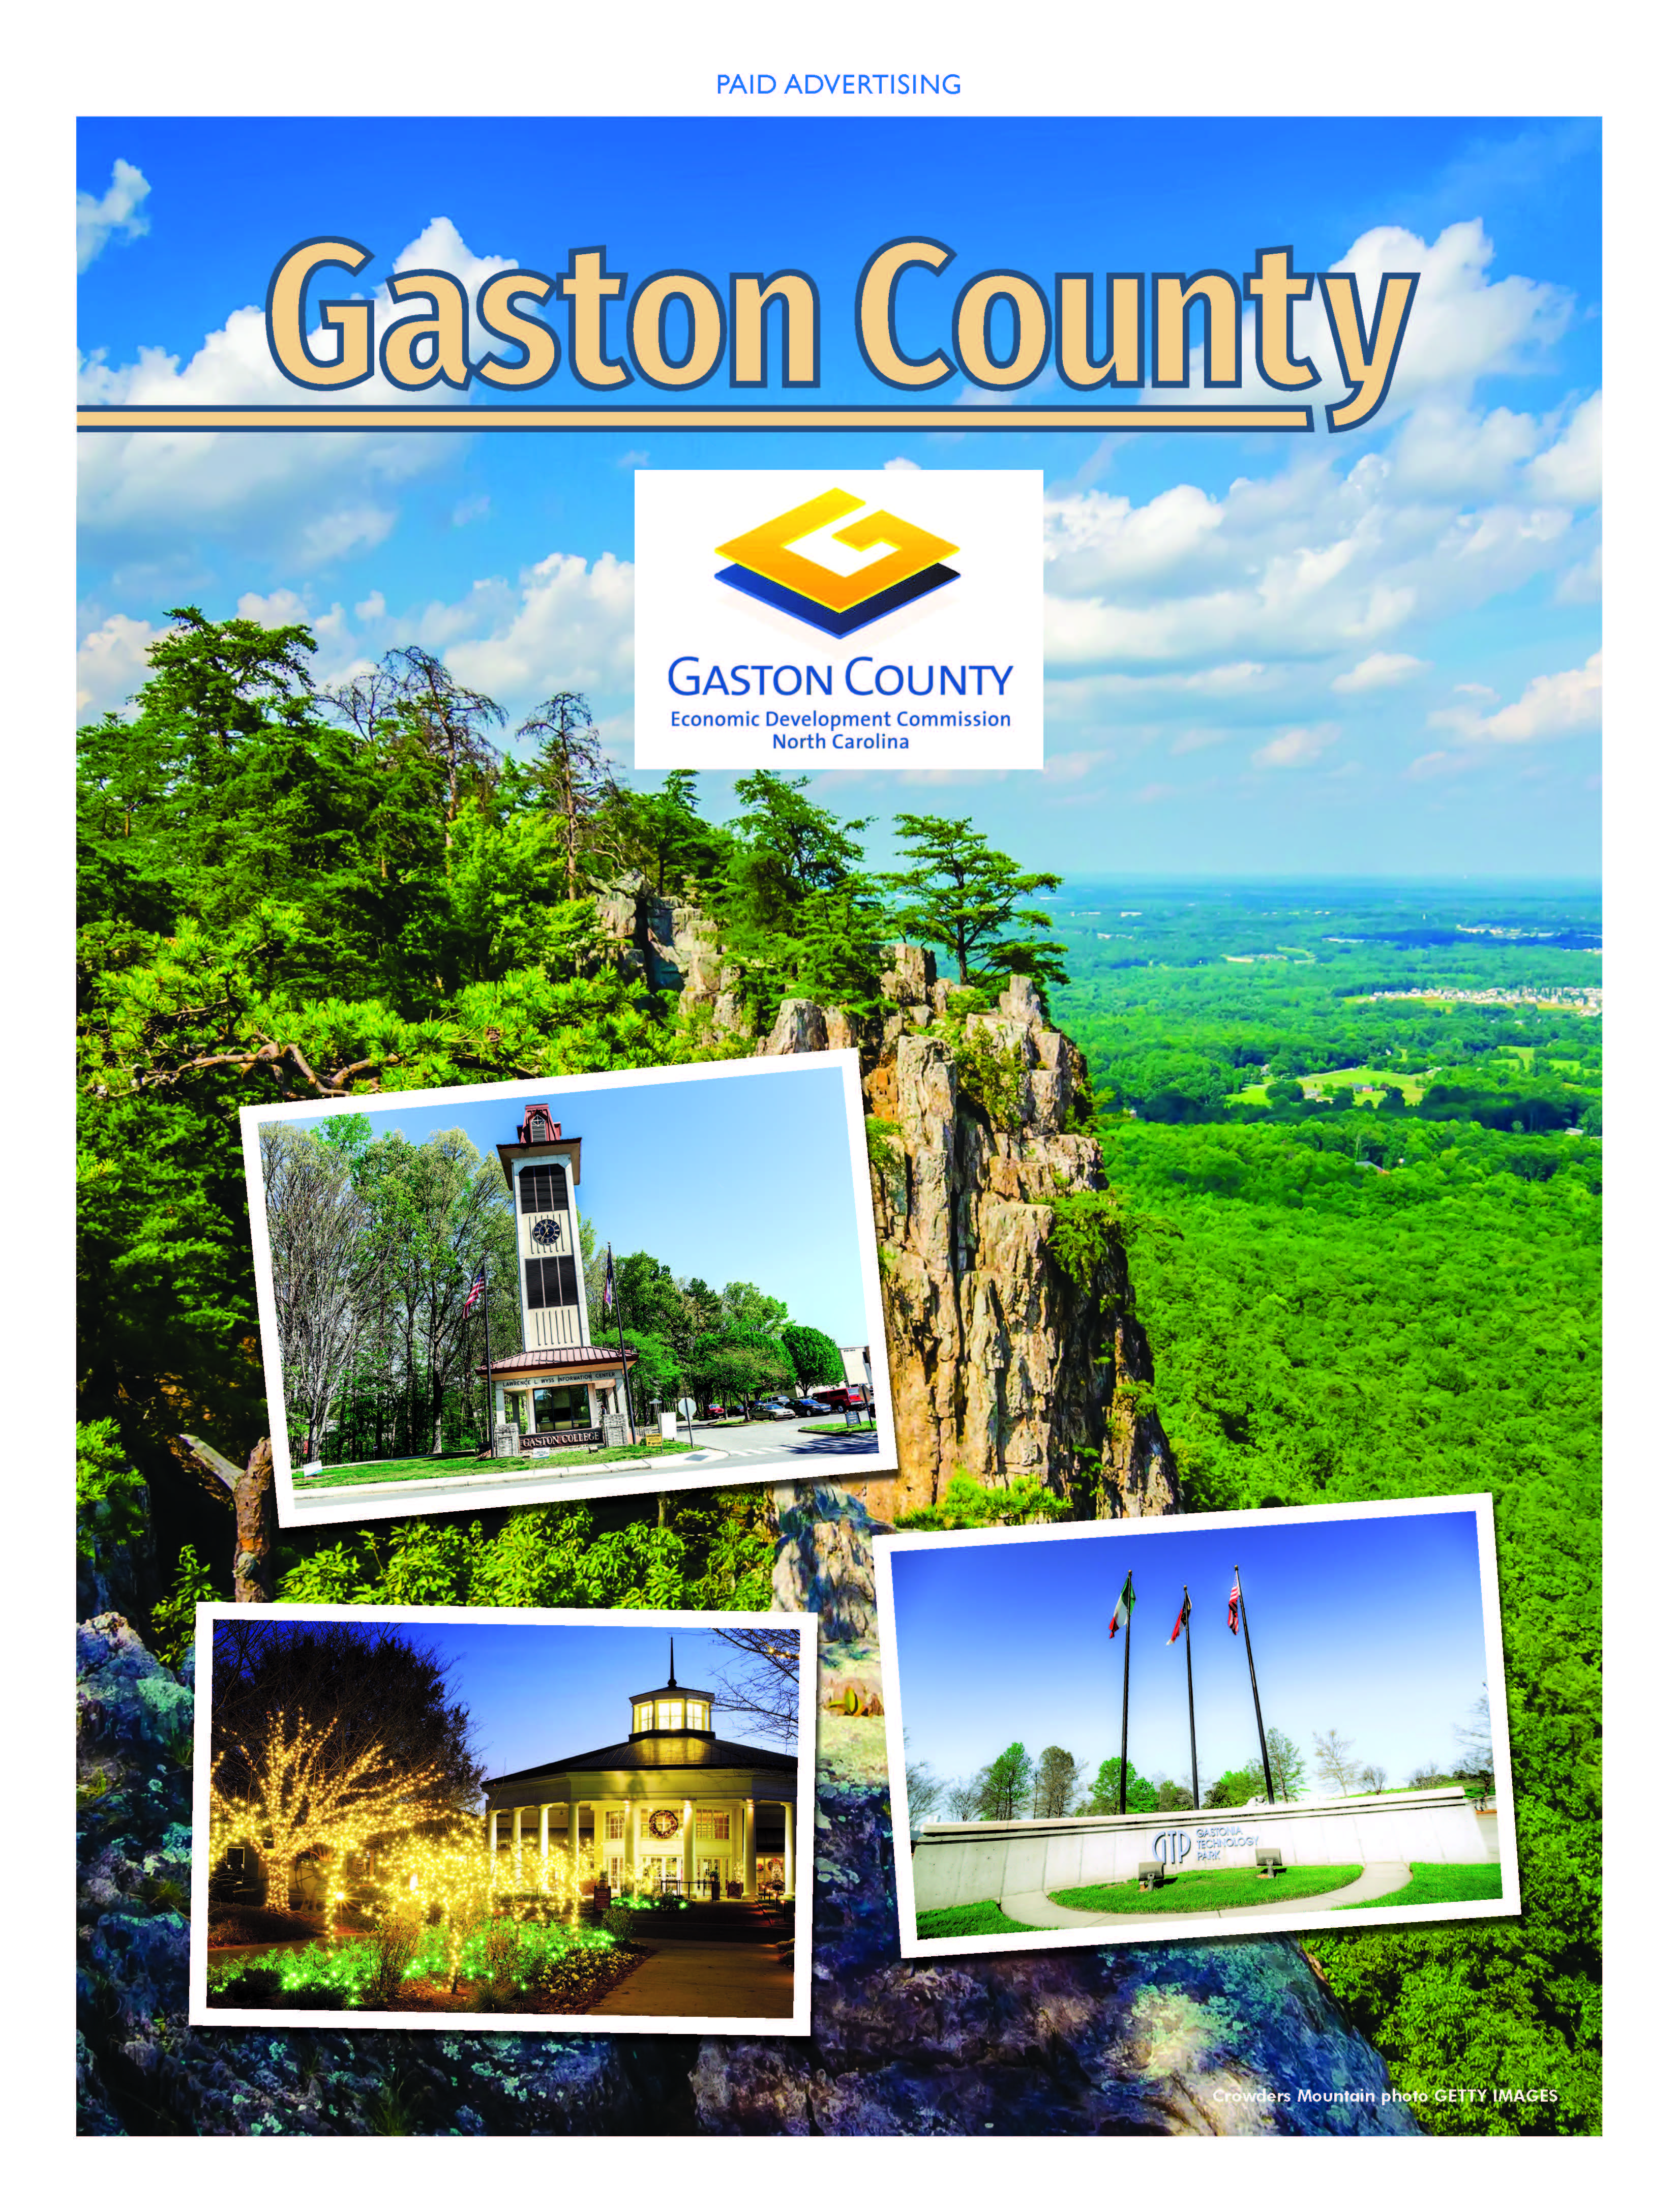 All About Gaston County